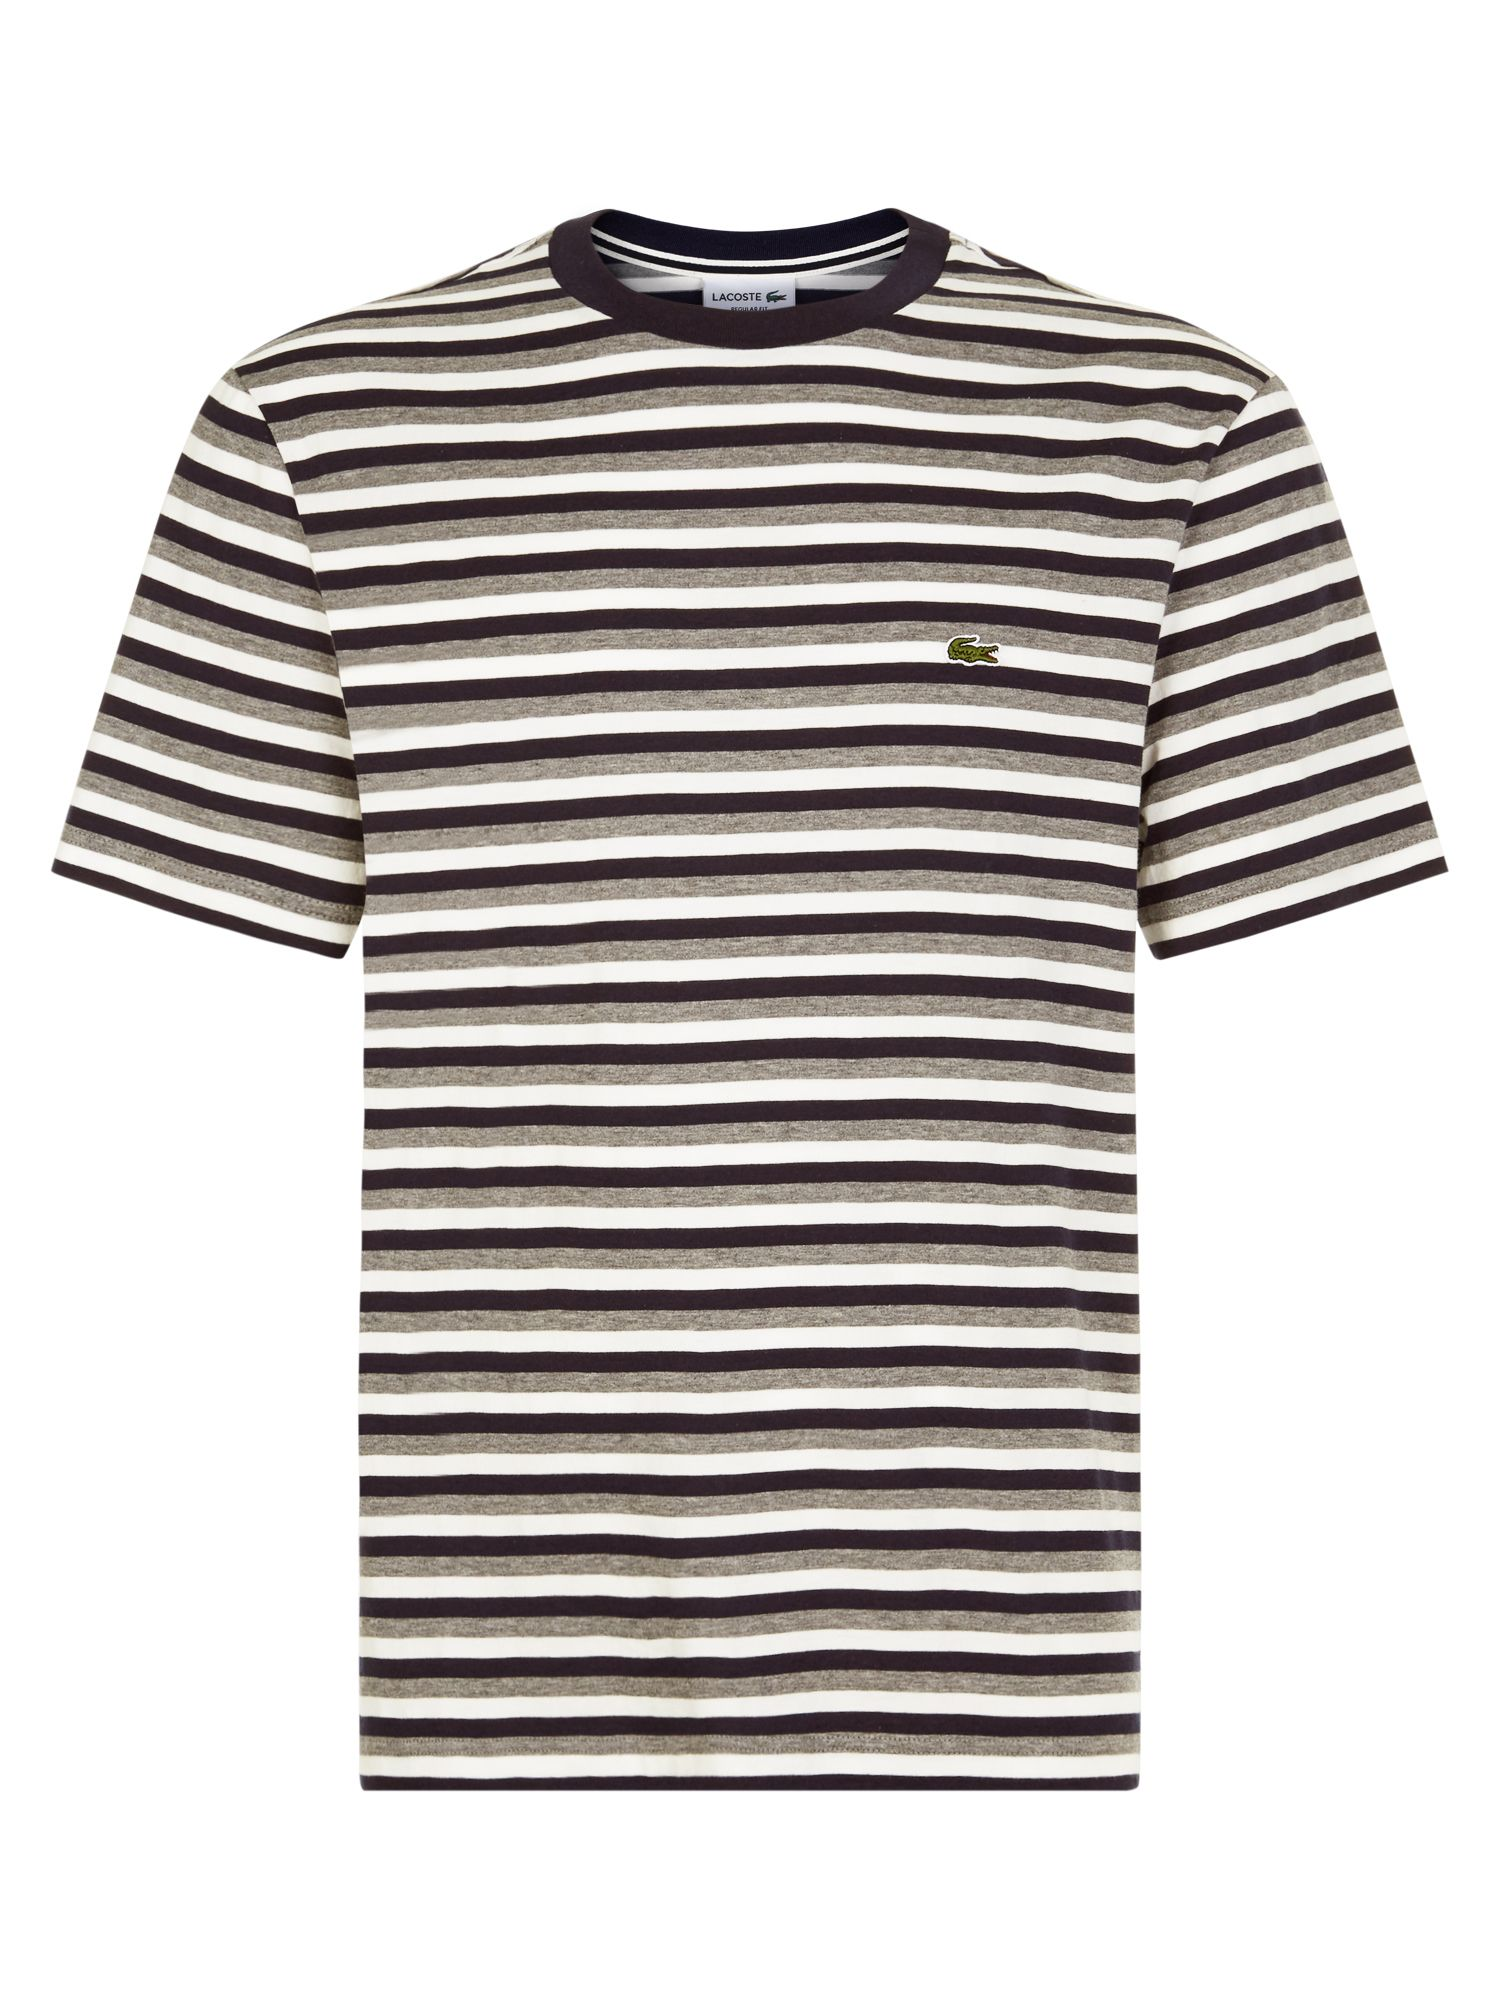 Men's Lacoste Stripped T-Shirt, Galaxite Chine